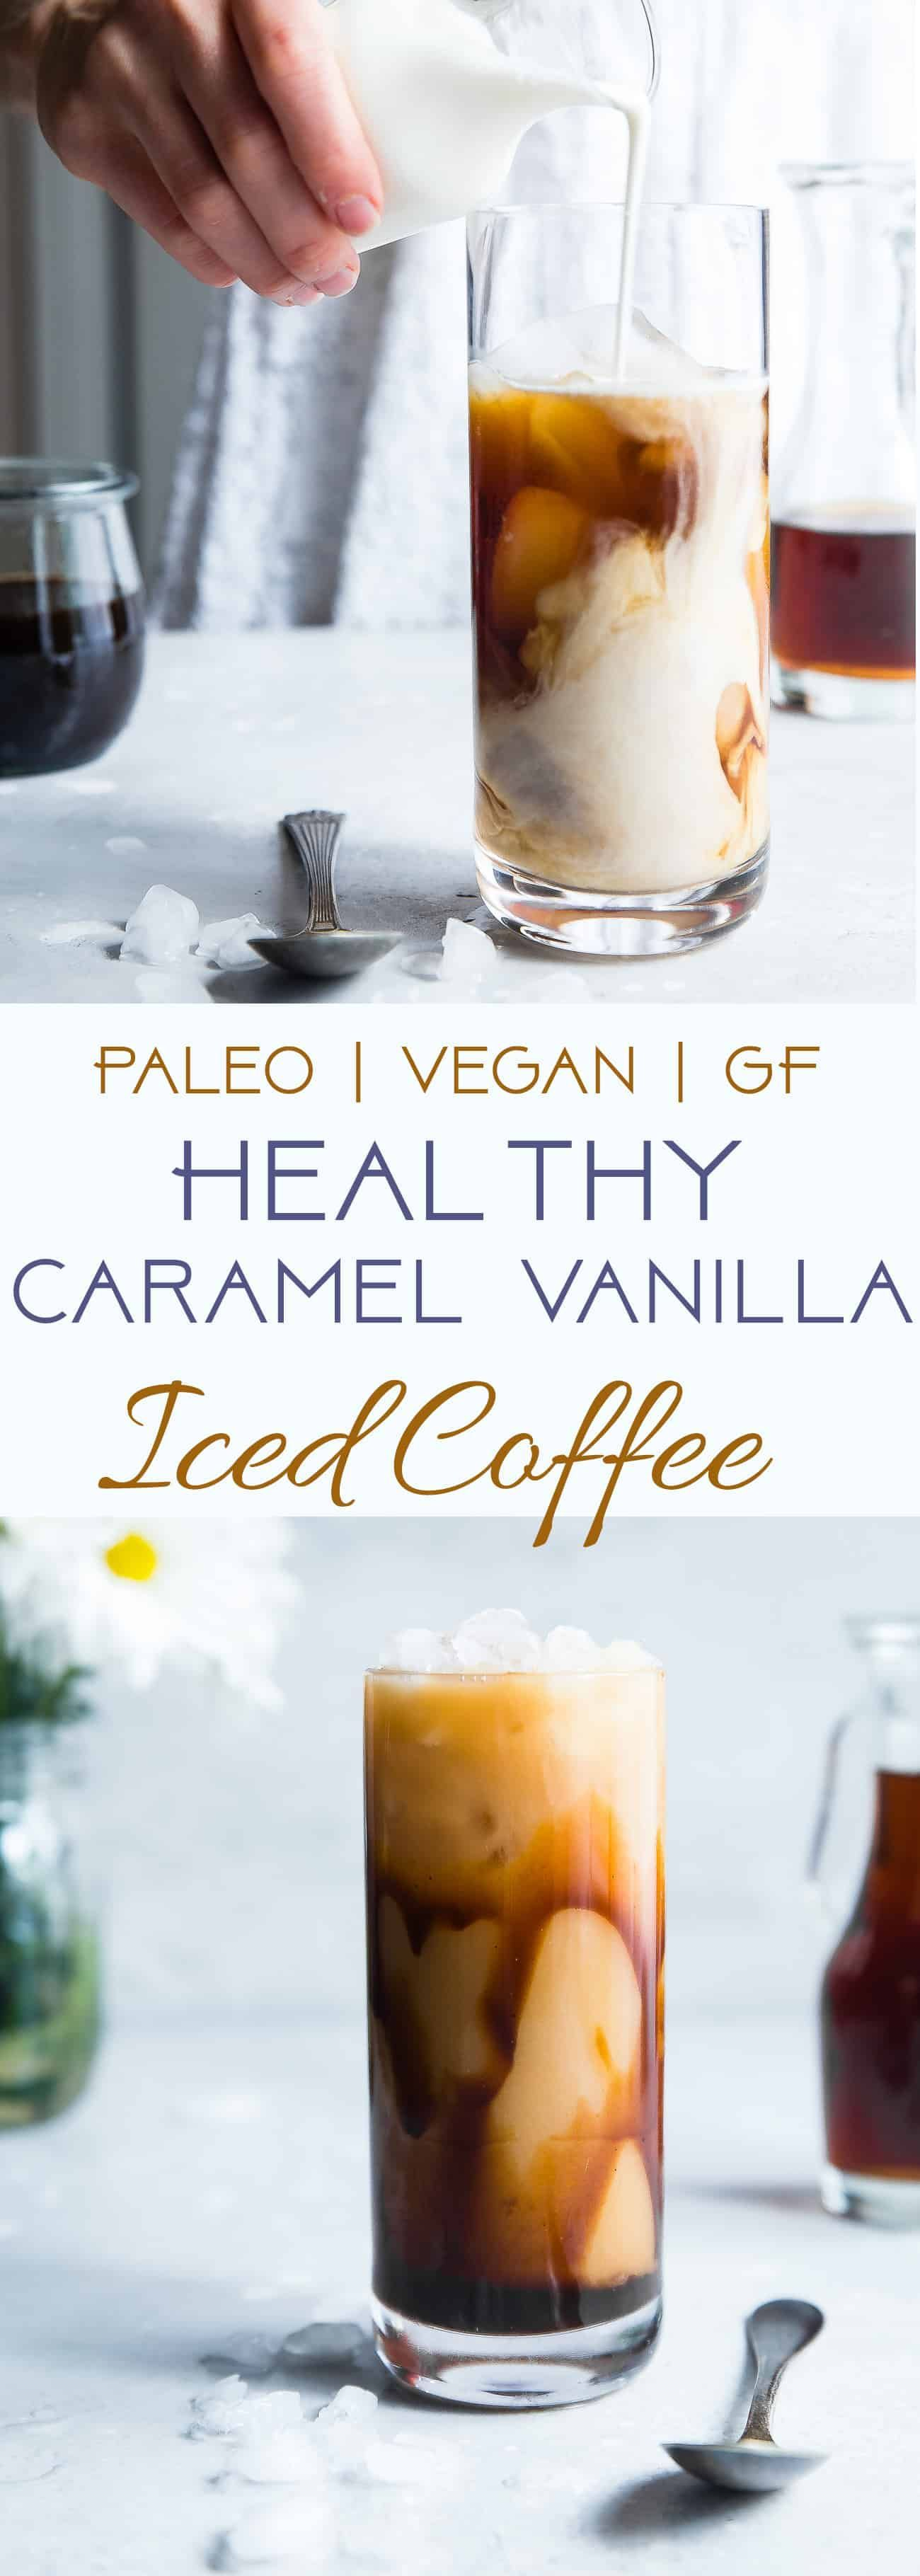 Paleo Homemade Caramel Vanilla Iced Coffee - Tastes WAY better than the coffee shop, is under 200 calories and is SO easy to make! Paleo and vegan friendly and gluten/grain/dairy/refined sugar free too! Homemade Caramel Vanilla Iced Coffee -Tastes WAY better than the coffee shop, is under 200 calories and is SO easy to make! Paleo and vegan friendly and gluten/grain/dairy/refined sugar free too! | |